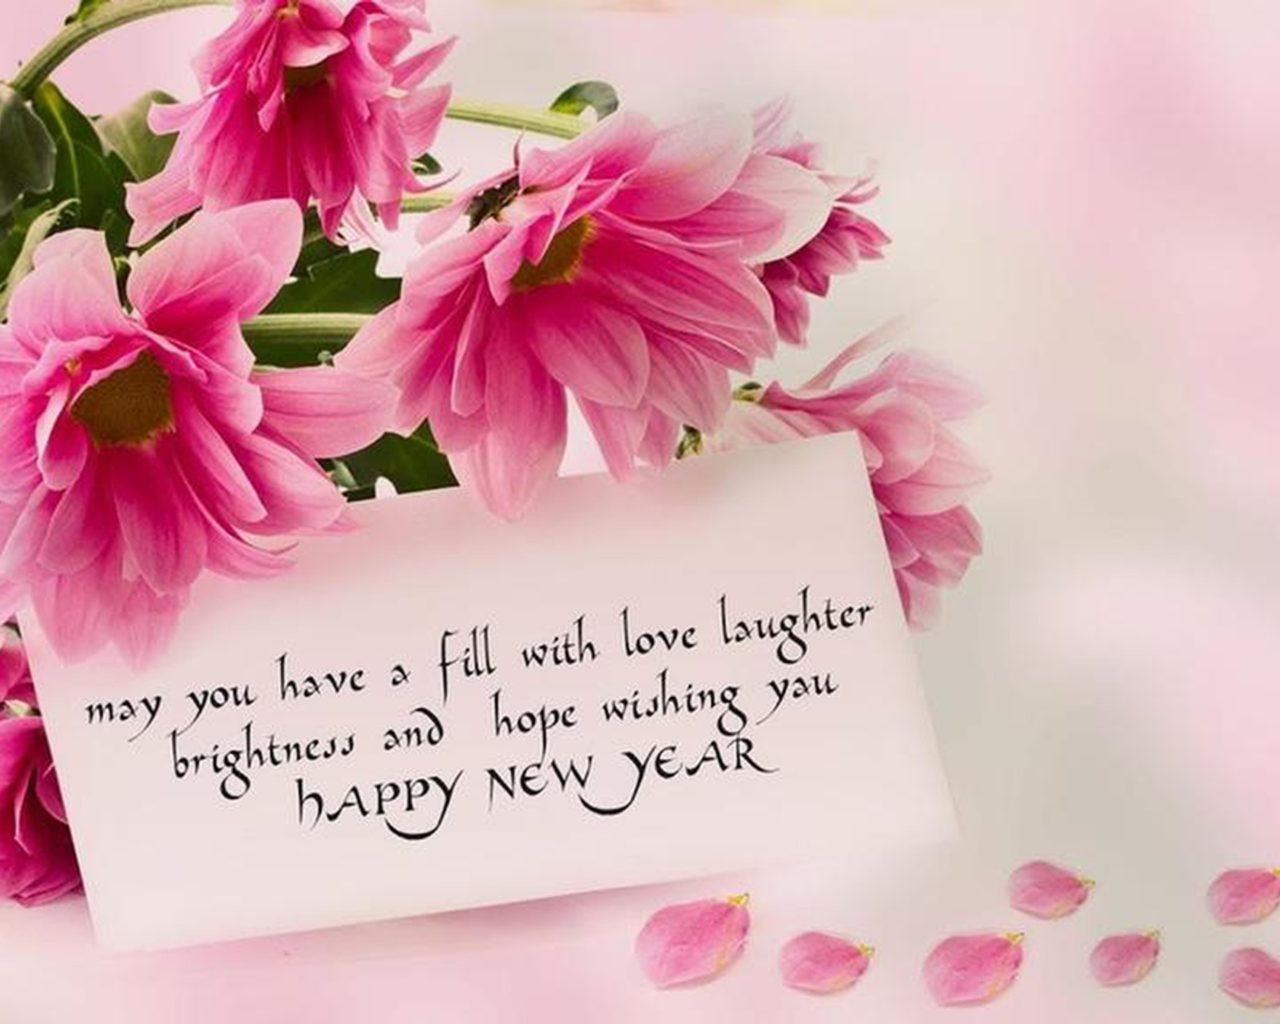 Happy New Year 2020 Rose Flowers Love Wallpapers Hd 5120x2880 1280x1024